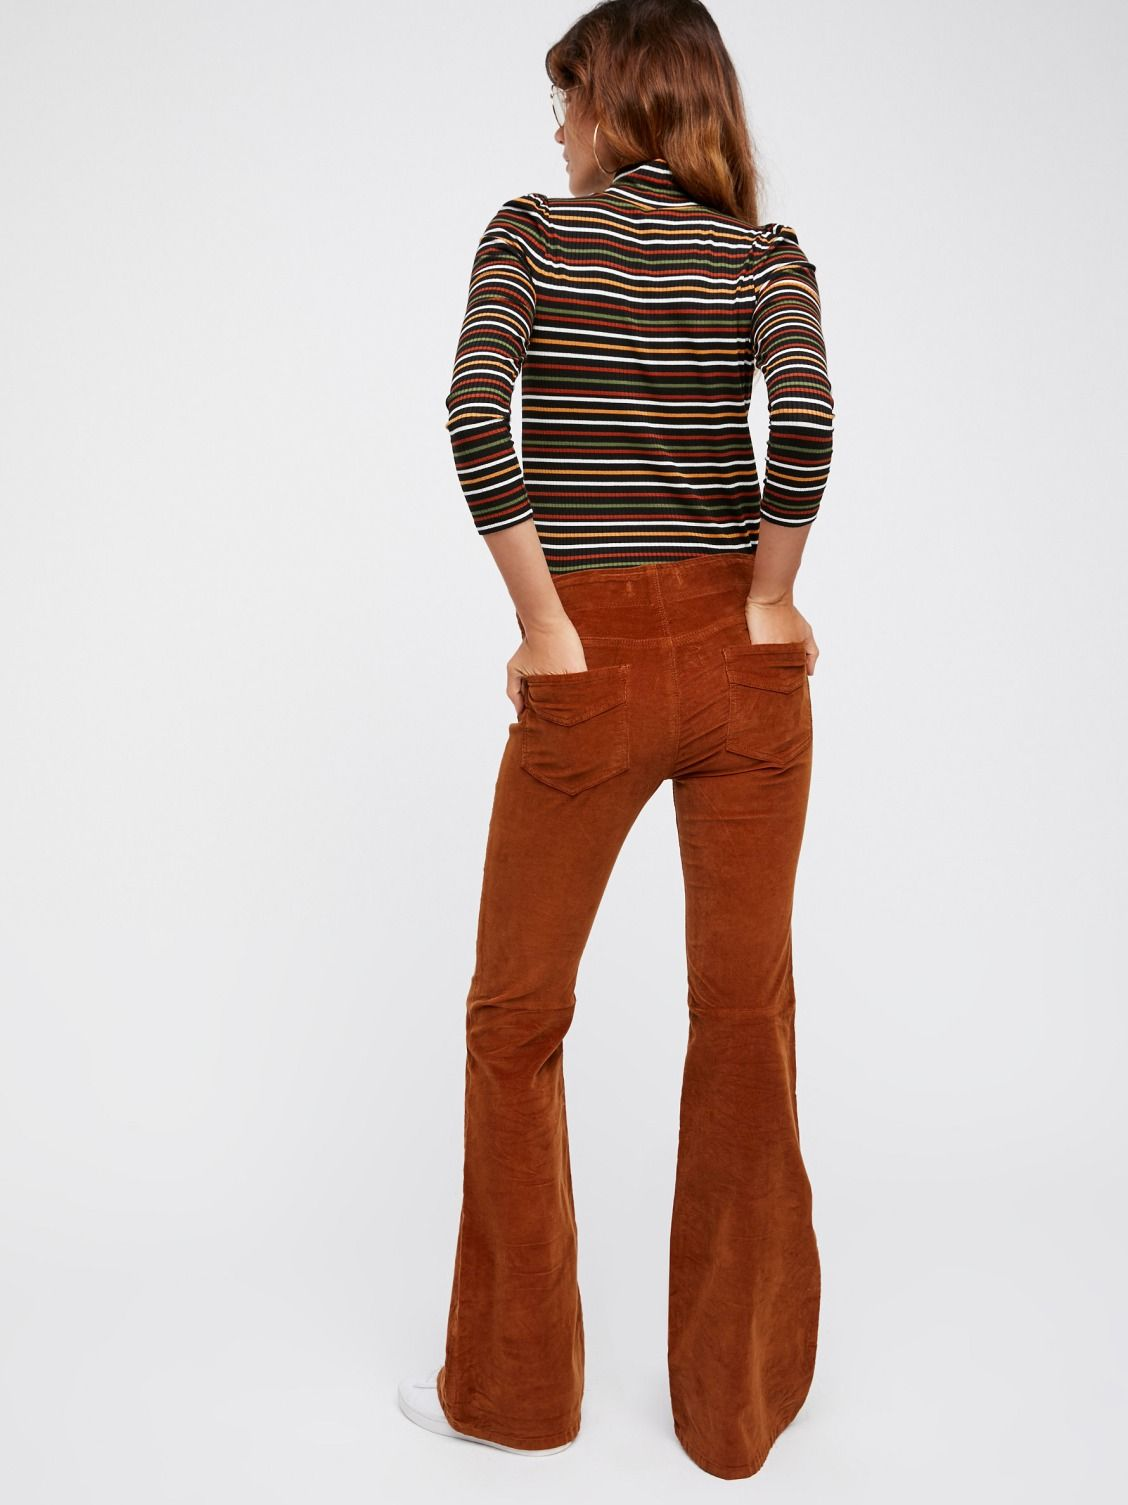 ea24d1dfd97bb9 Pull On Corduroy Flare | New Arrivals | Pants, Corduroy, Fashion outfits